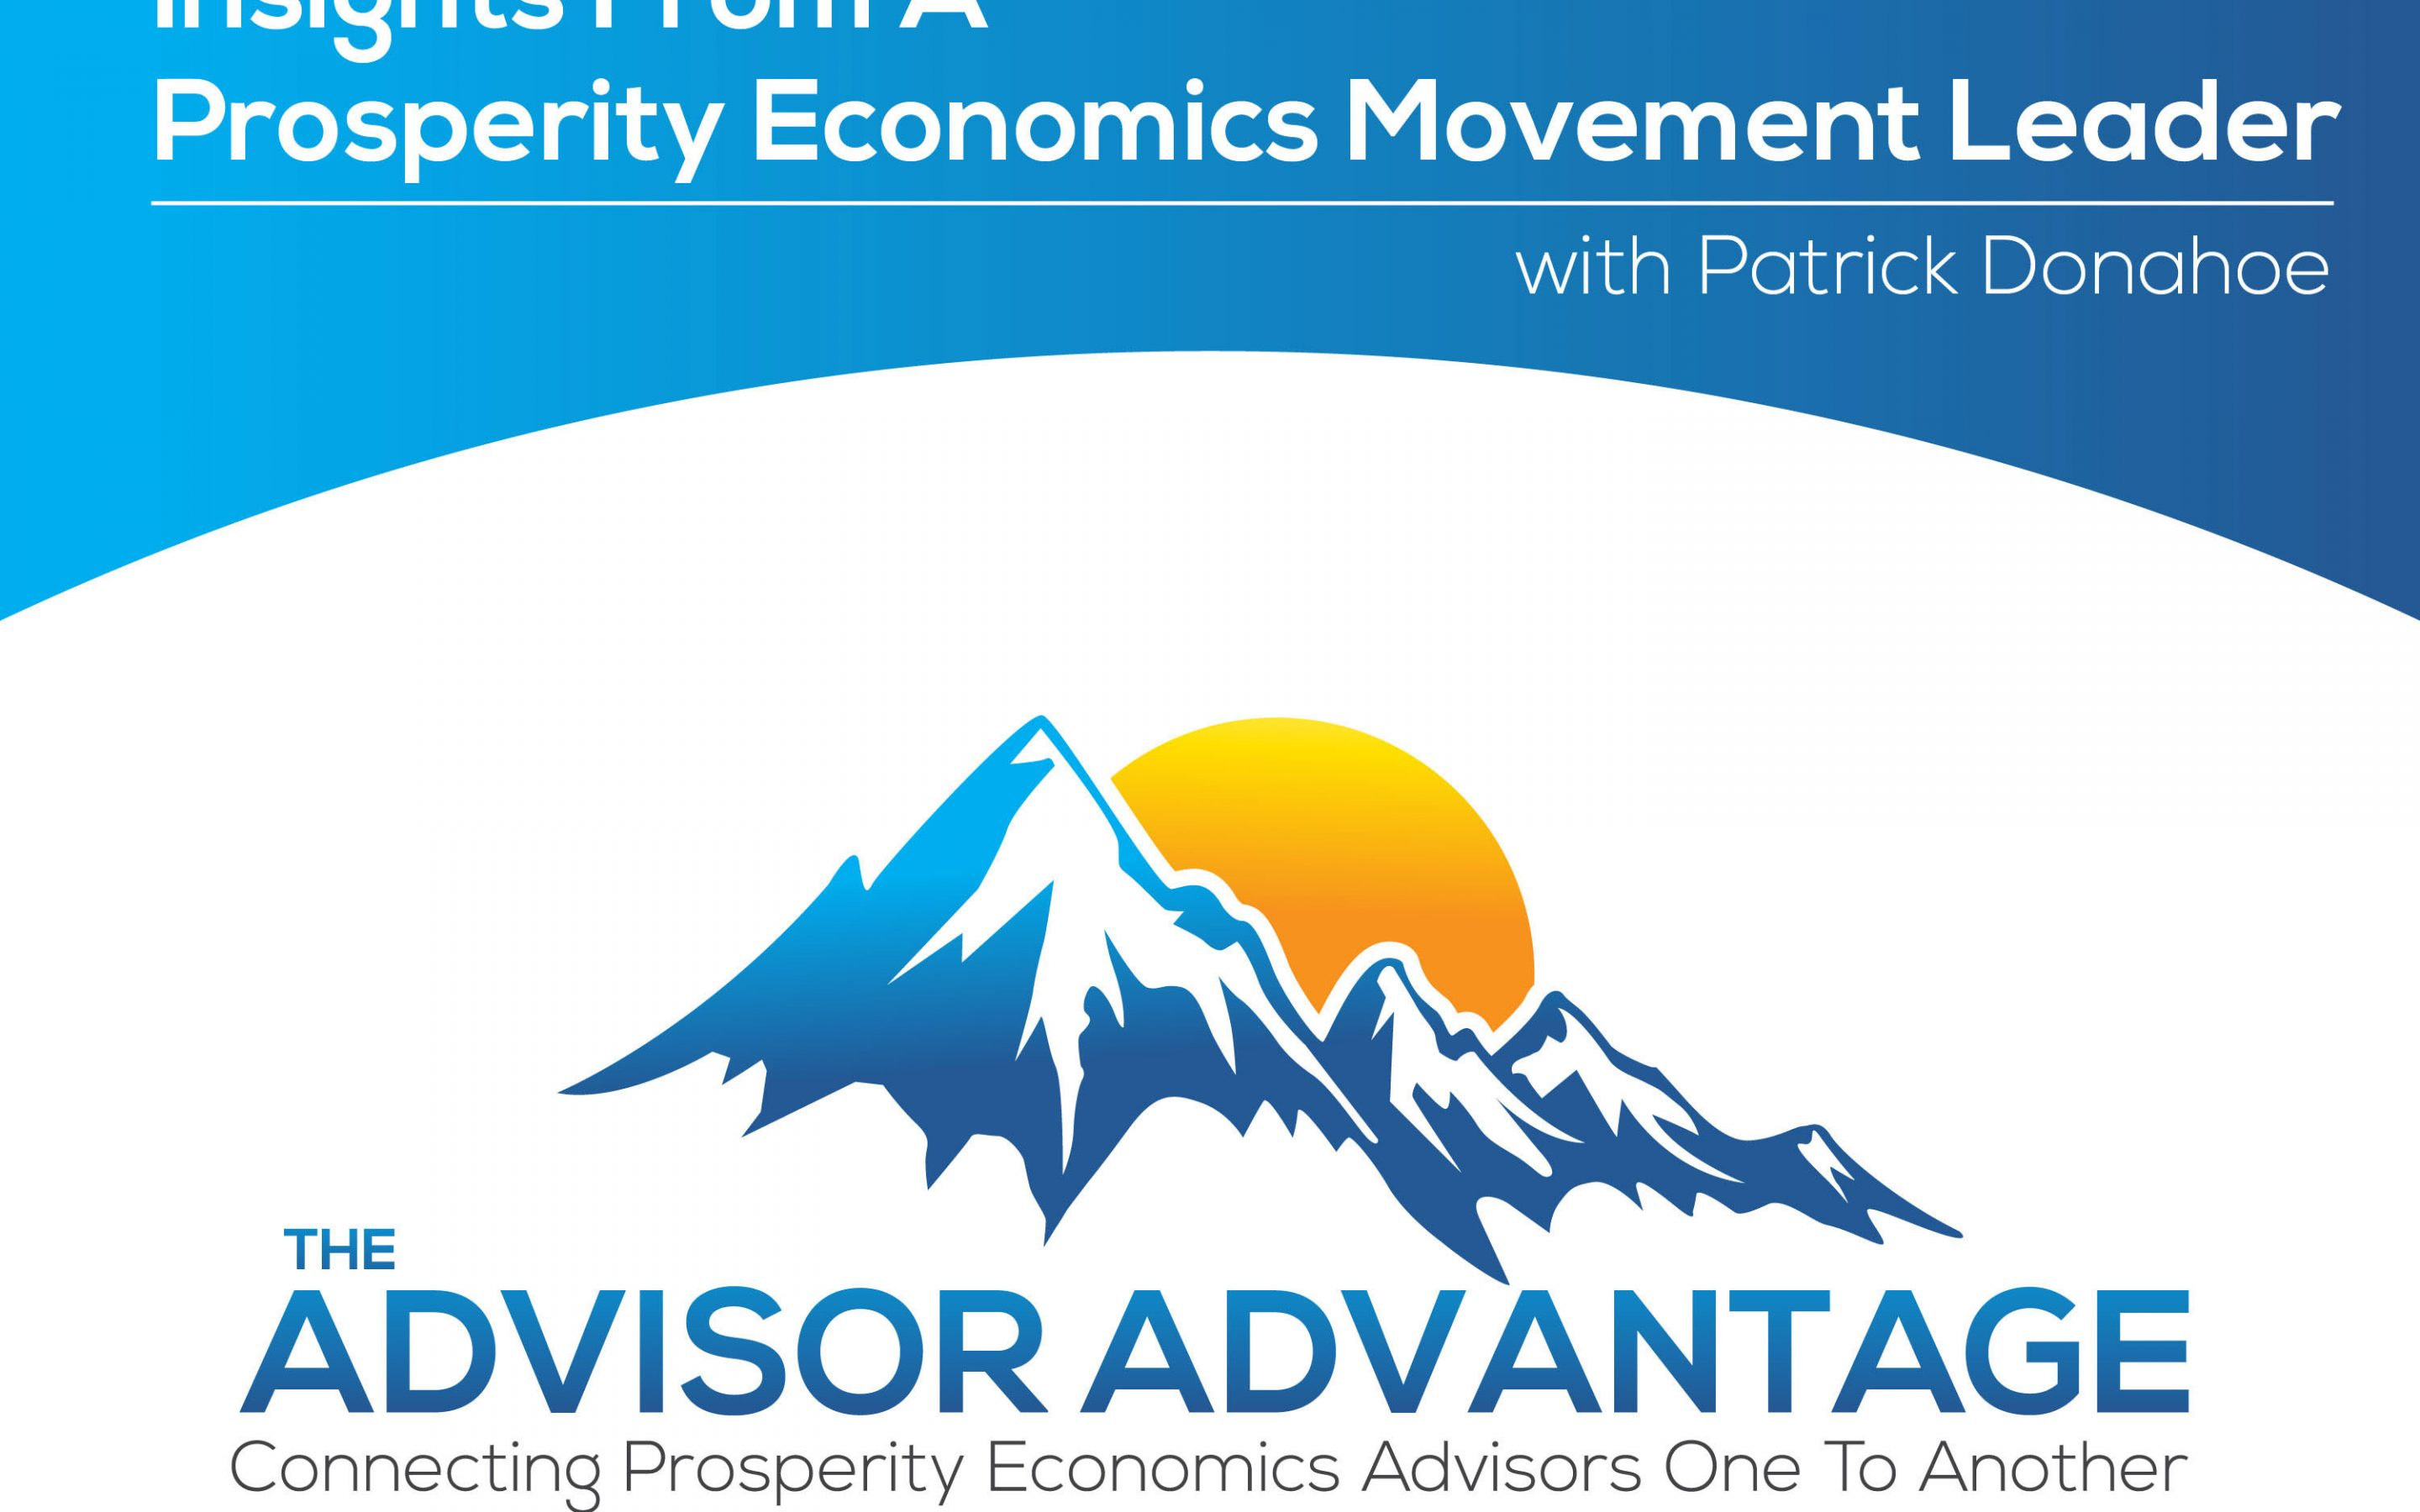 Insights From A Prosperity Economics Movement Leader with Patrick Donahoe – Episode 125